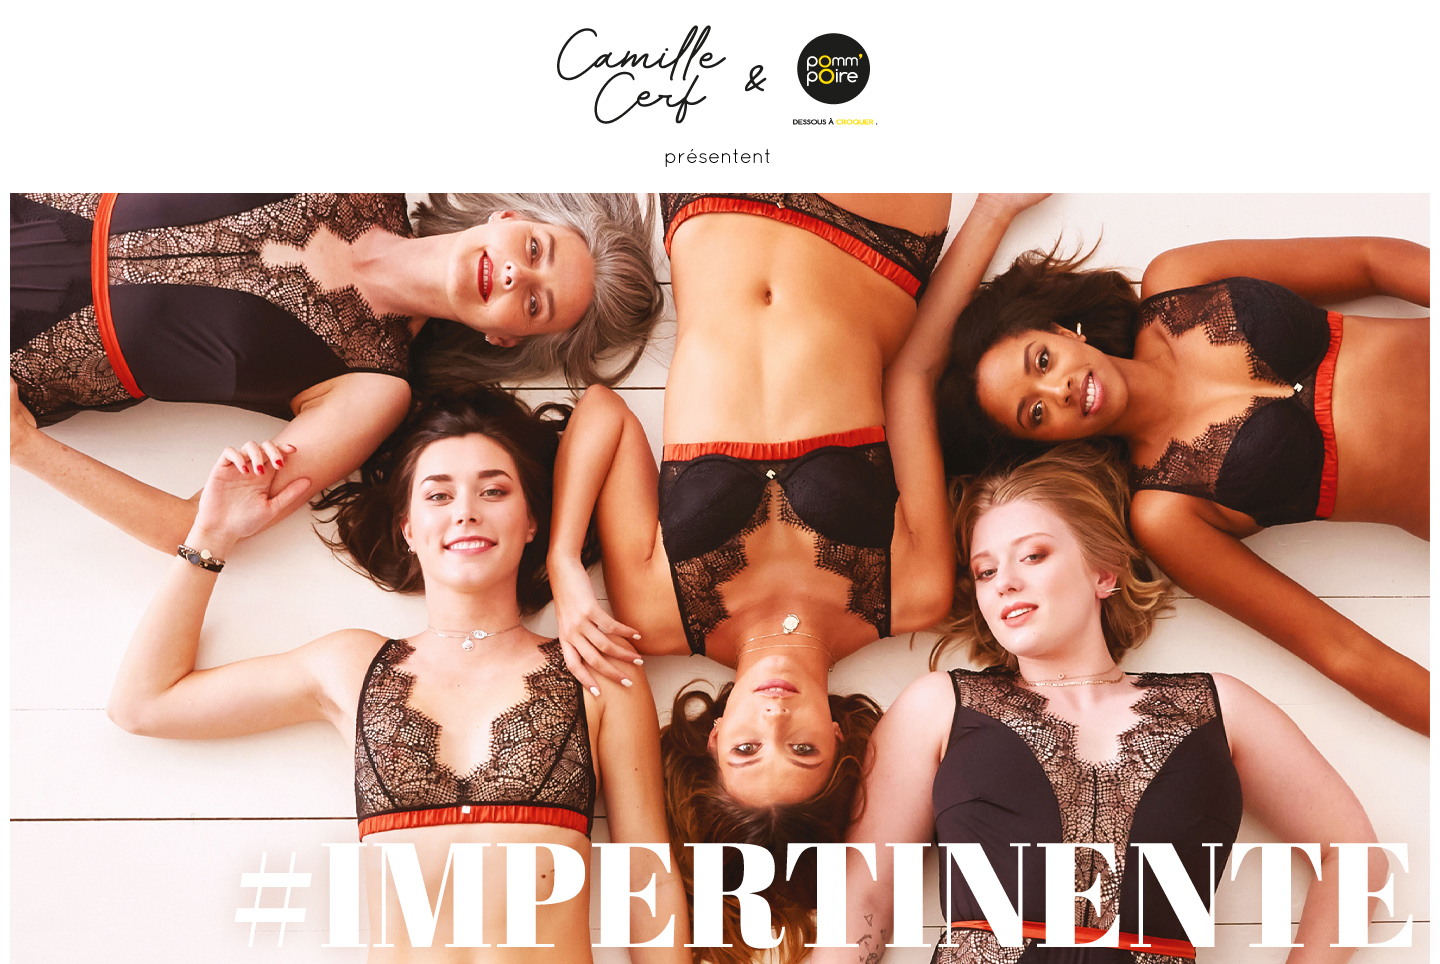 Lingerie - Gamme IMPERTINENTE by Camille Cerf & Pomm'Poire